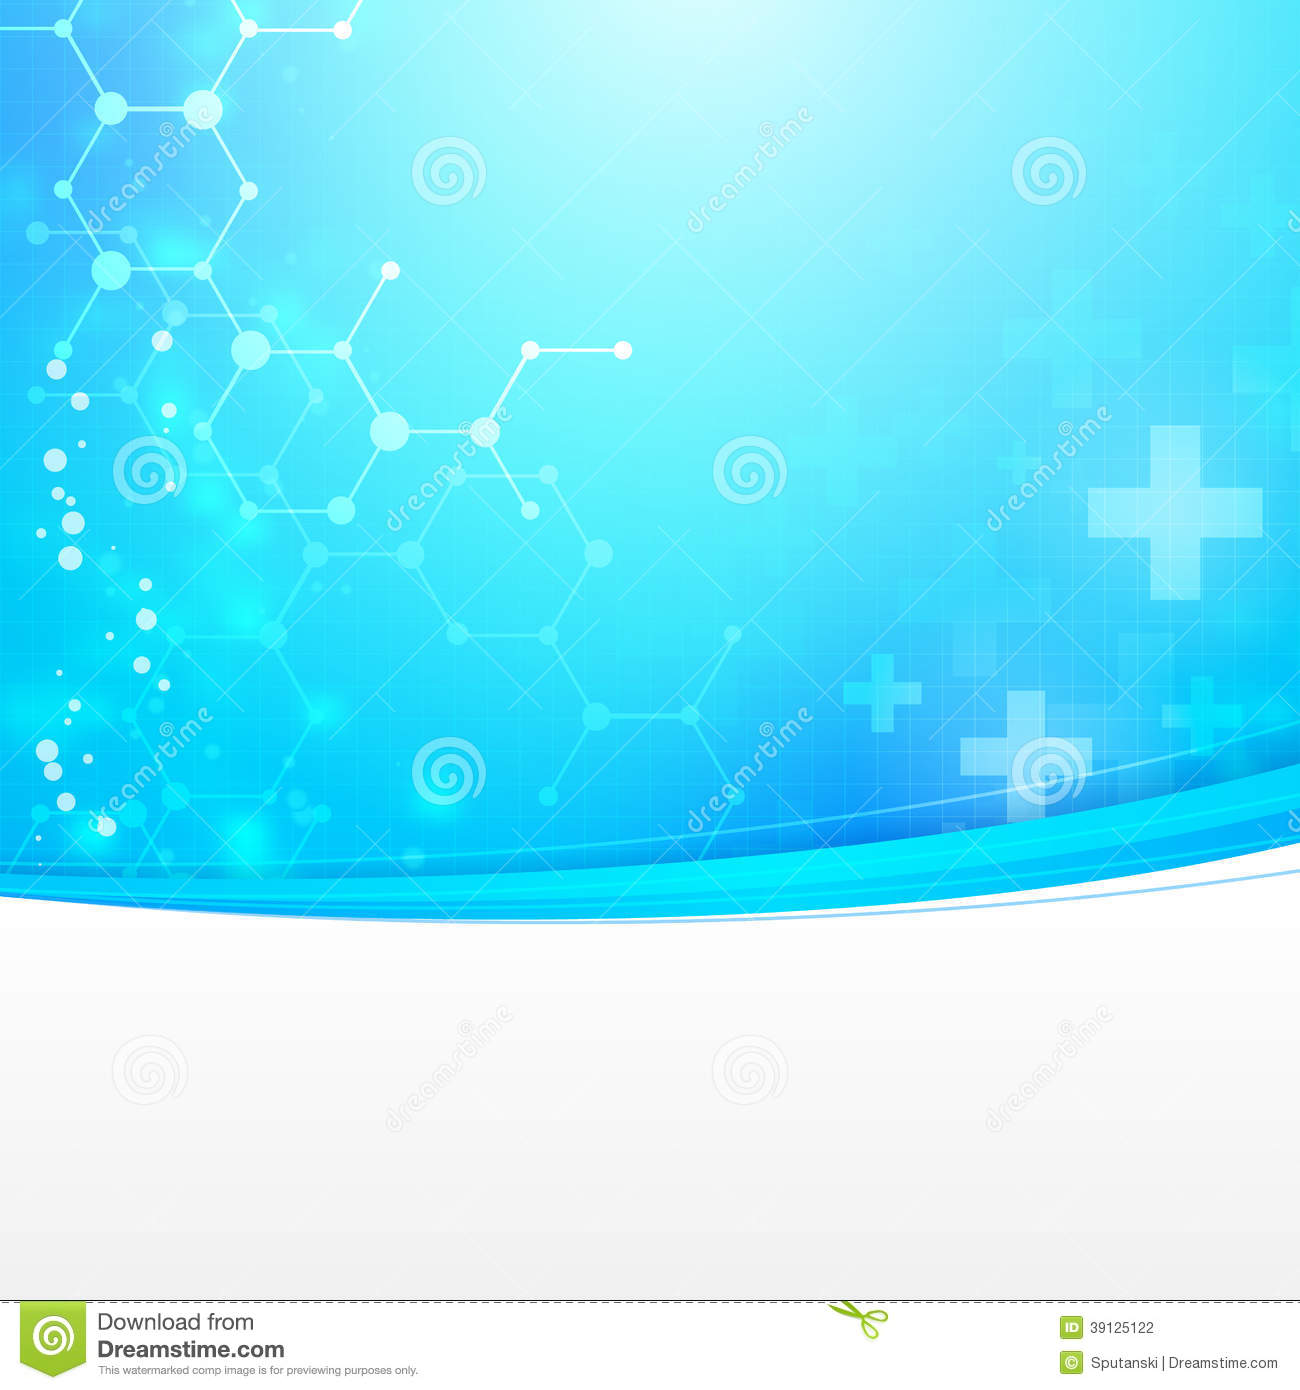 Abstract Medical Technology Background Stock Vector ...